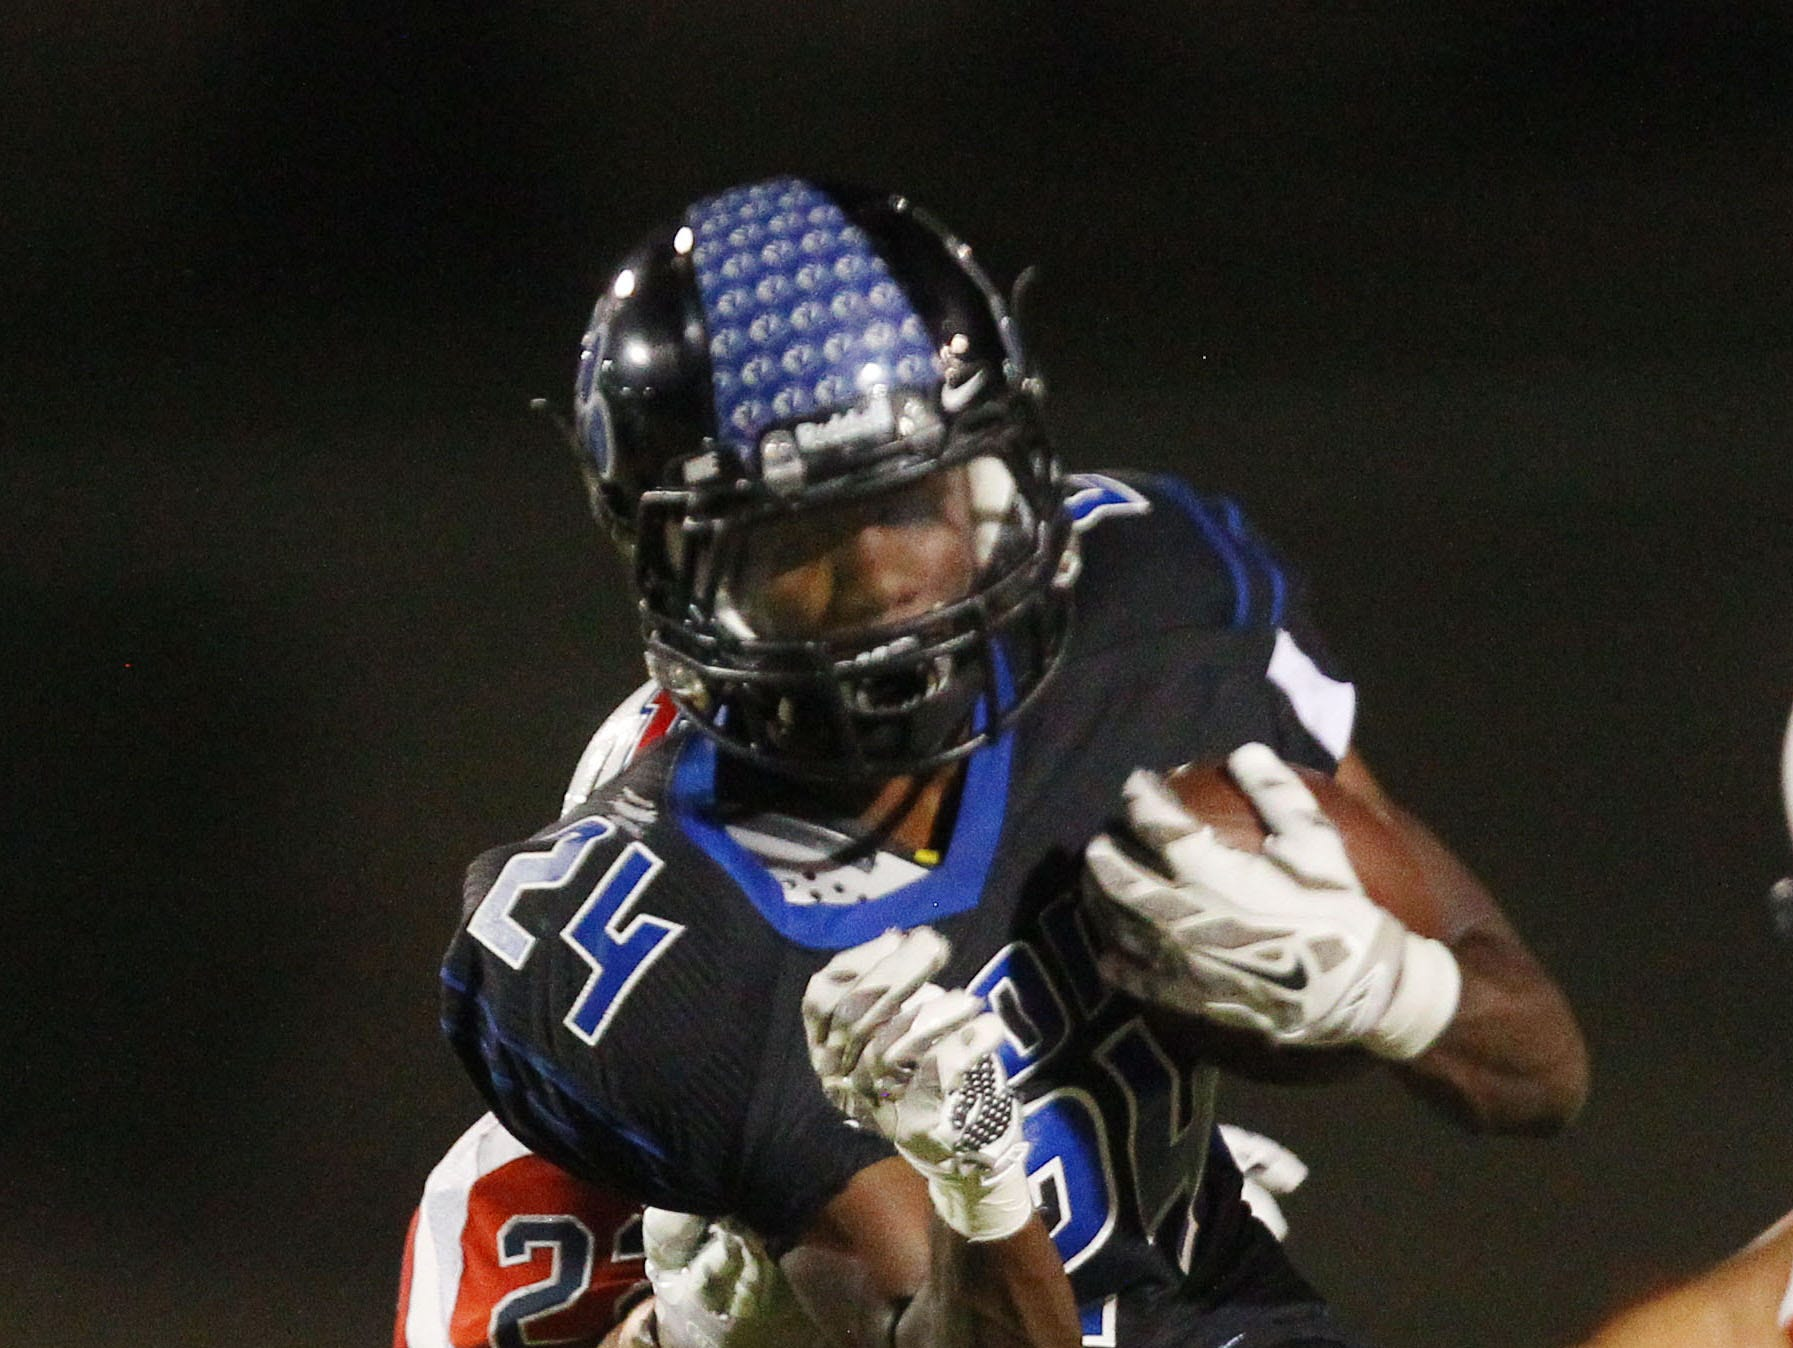 At right, Cathedral City High School's James Green III is stopped for a loss of yardage by Heritage High School's Javier Luna during Cathedral City's lost at home.